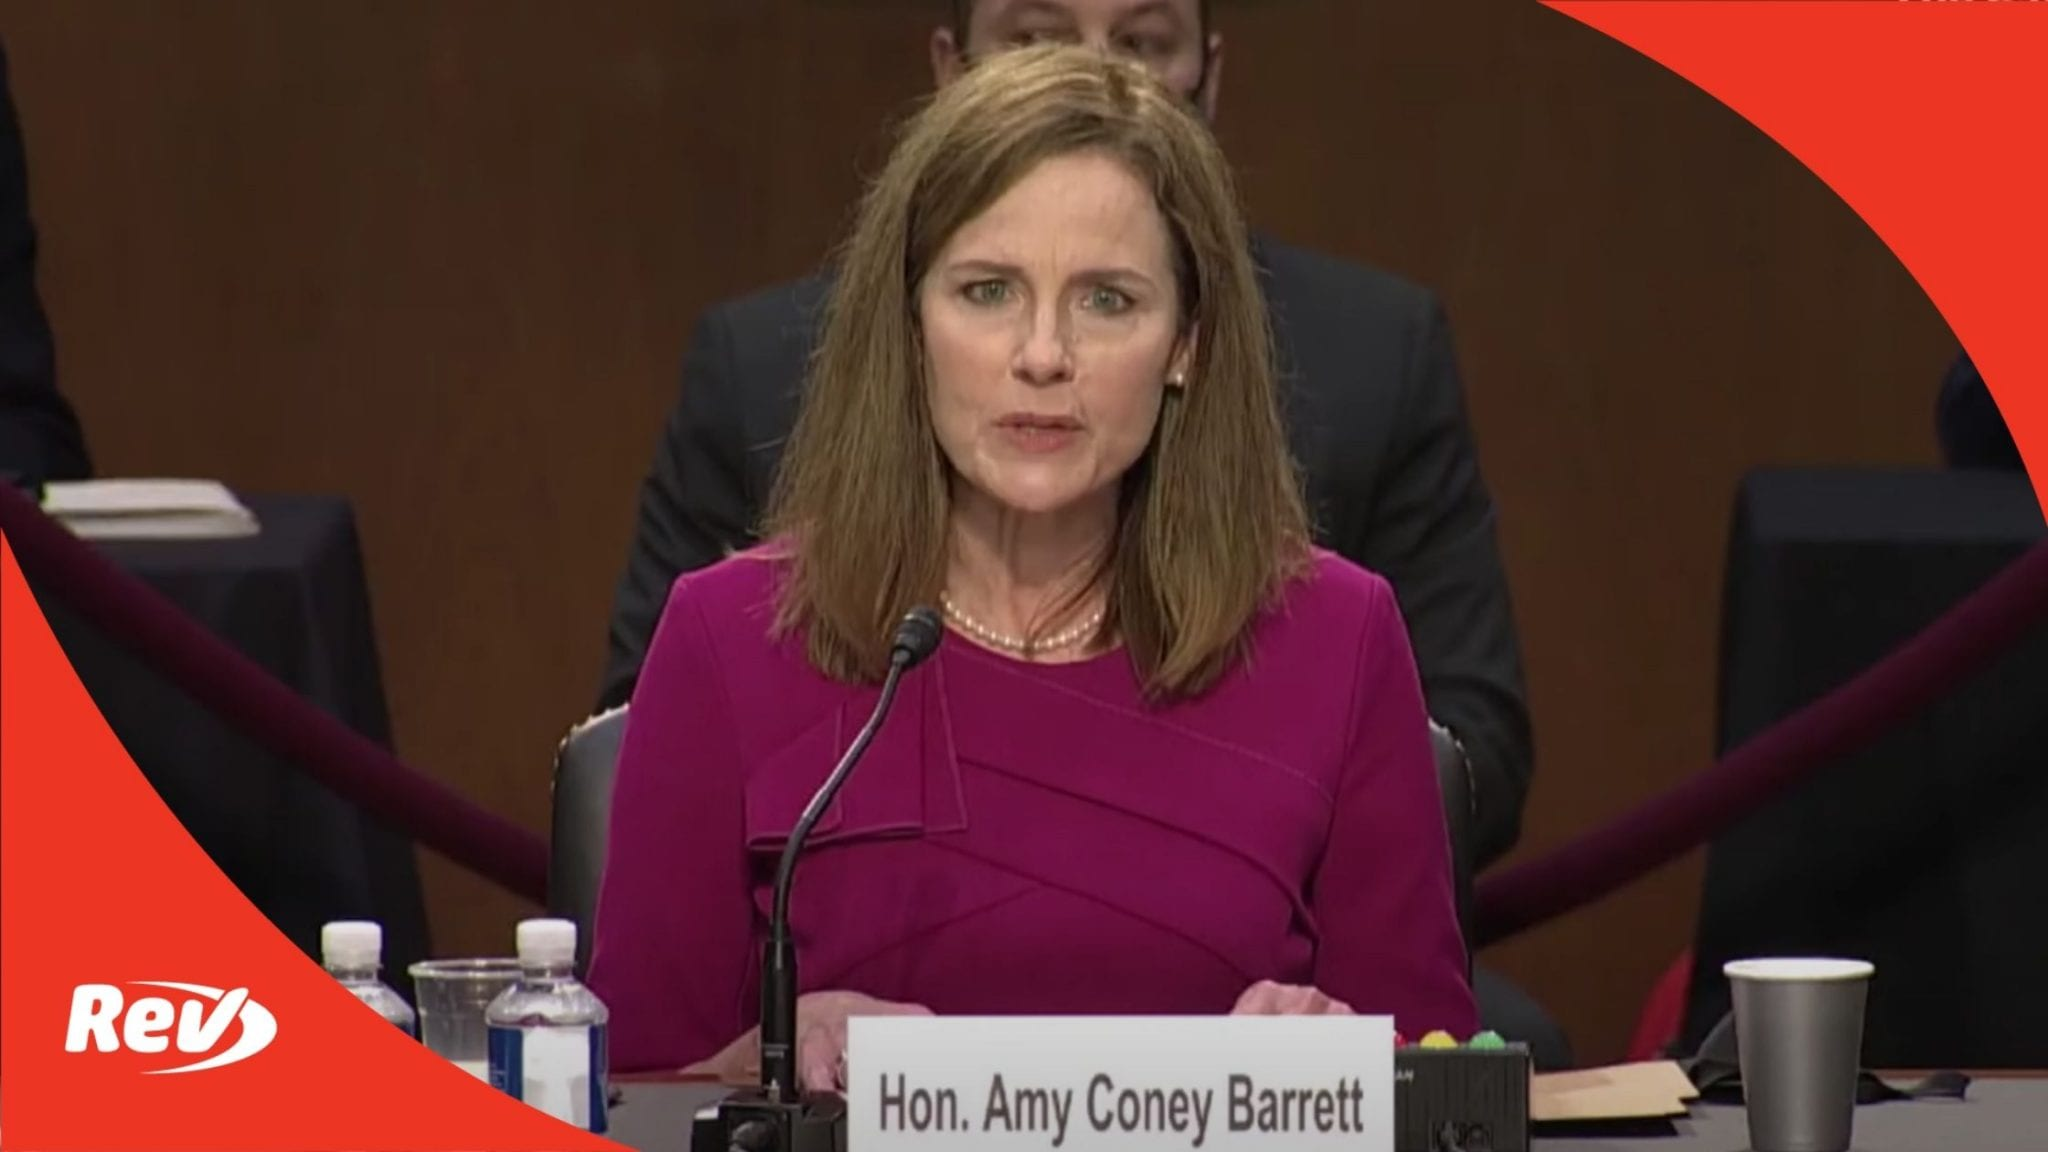 Amy Coney Barrett Confirmation Hearing Opening Statement Transcript